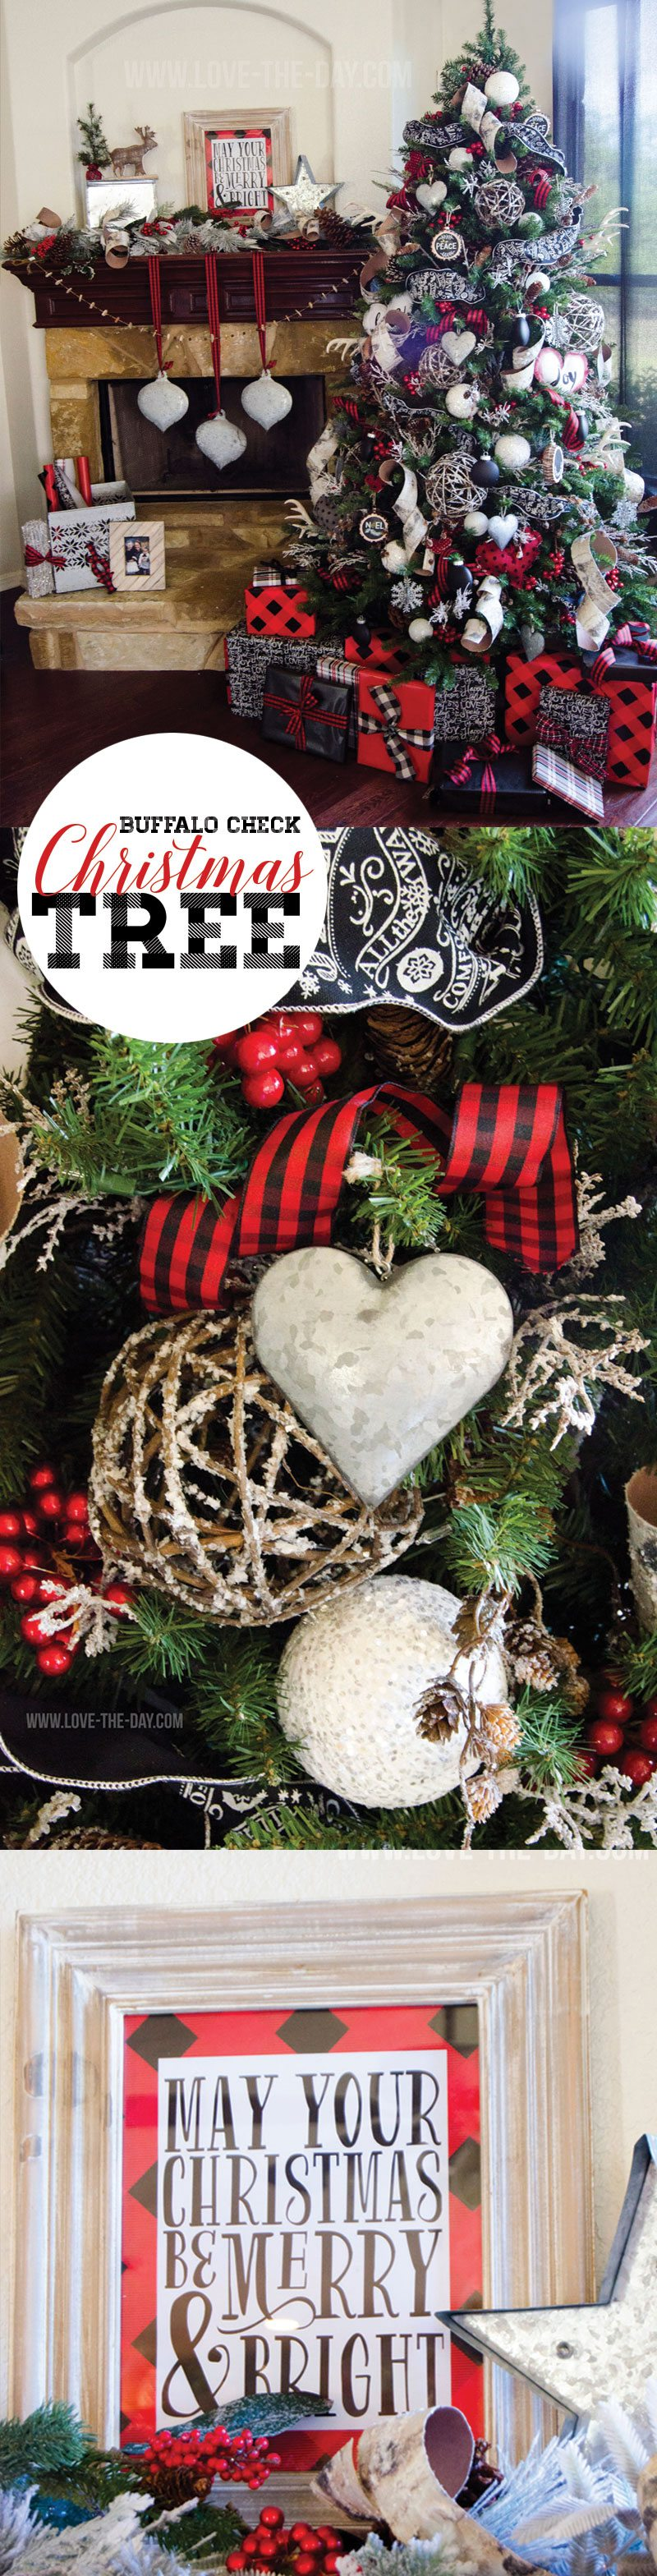 Buffalo Check Christmas Tree by Lindi Haws of Love The Day